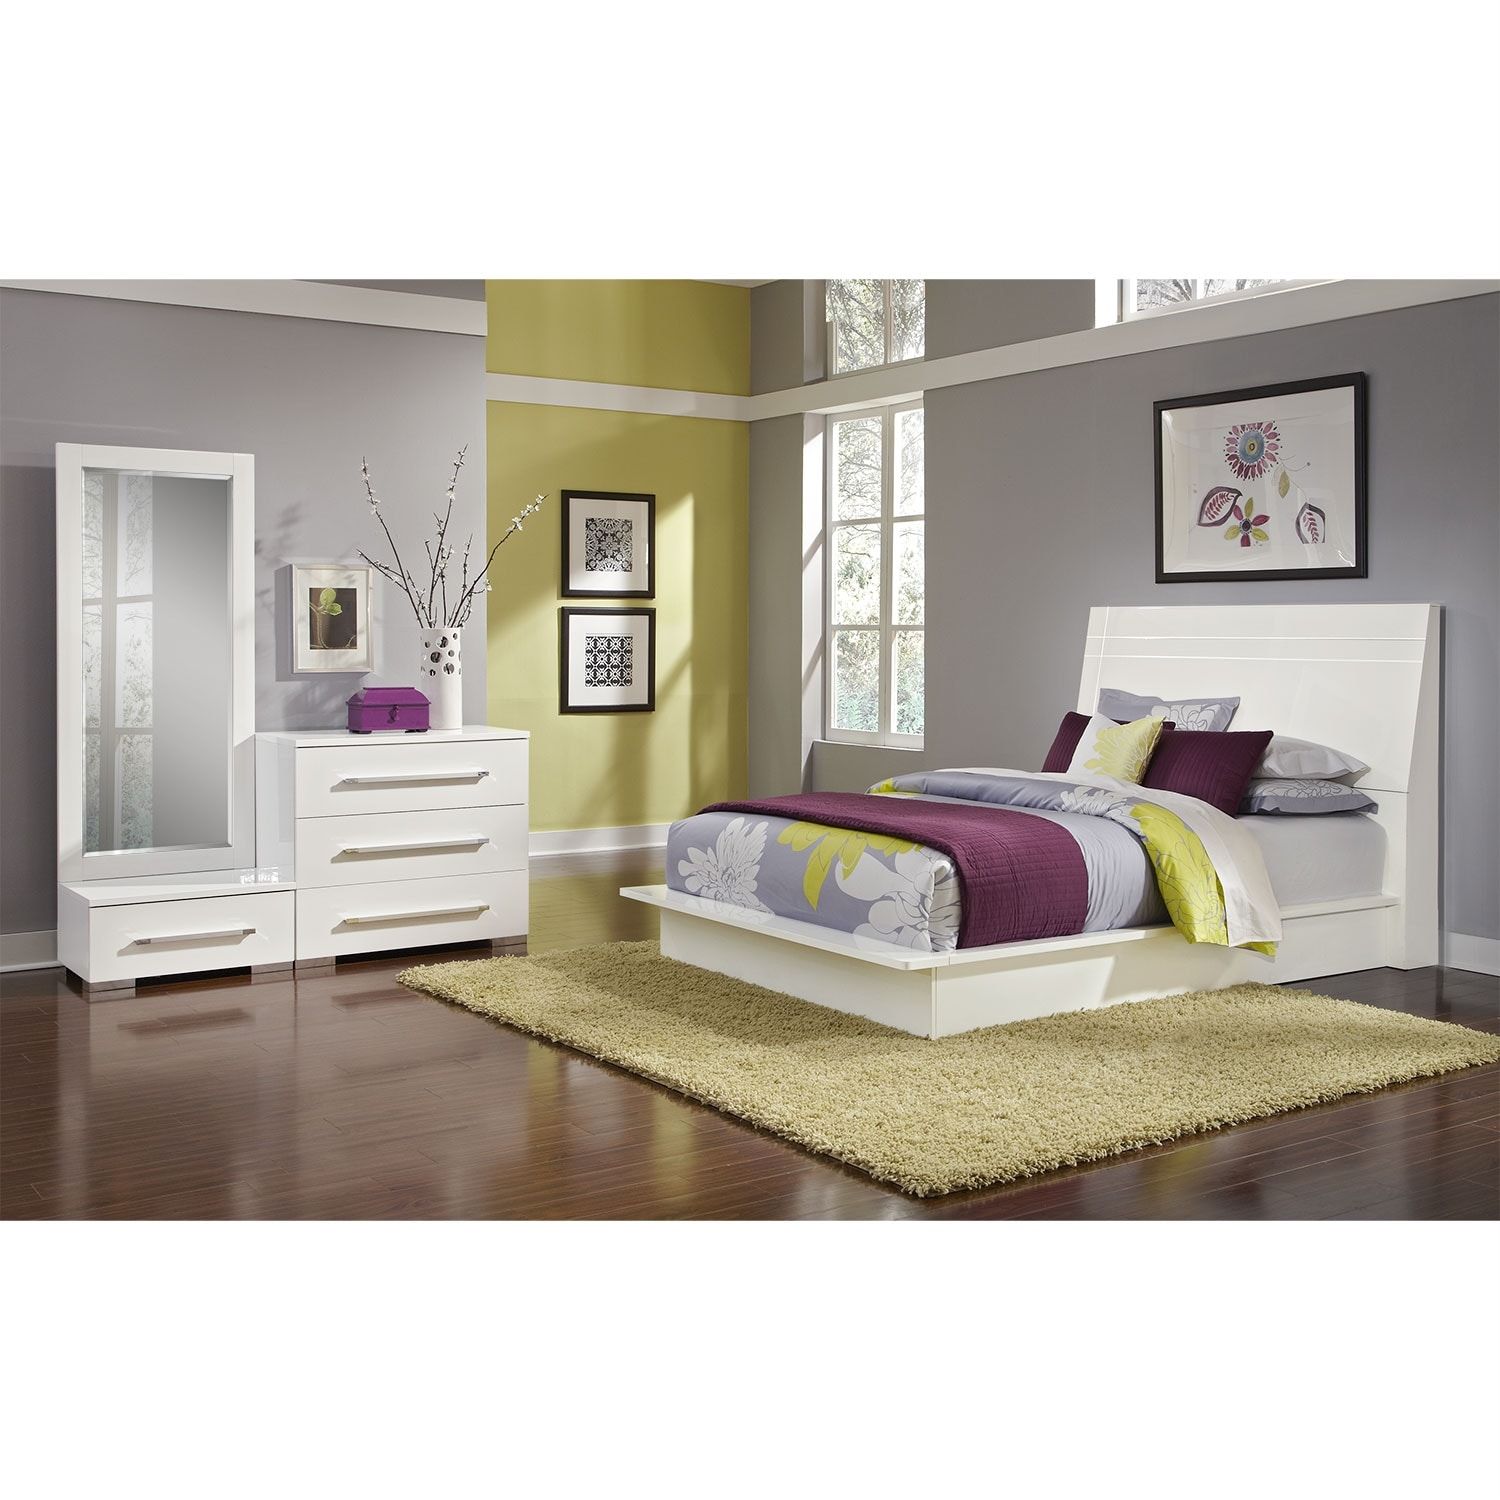 [Dimora White II 5 Pc. Queen Bedroom (Alternate)]